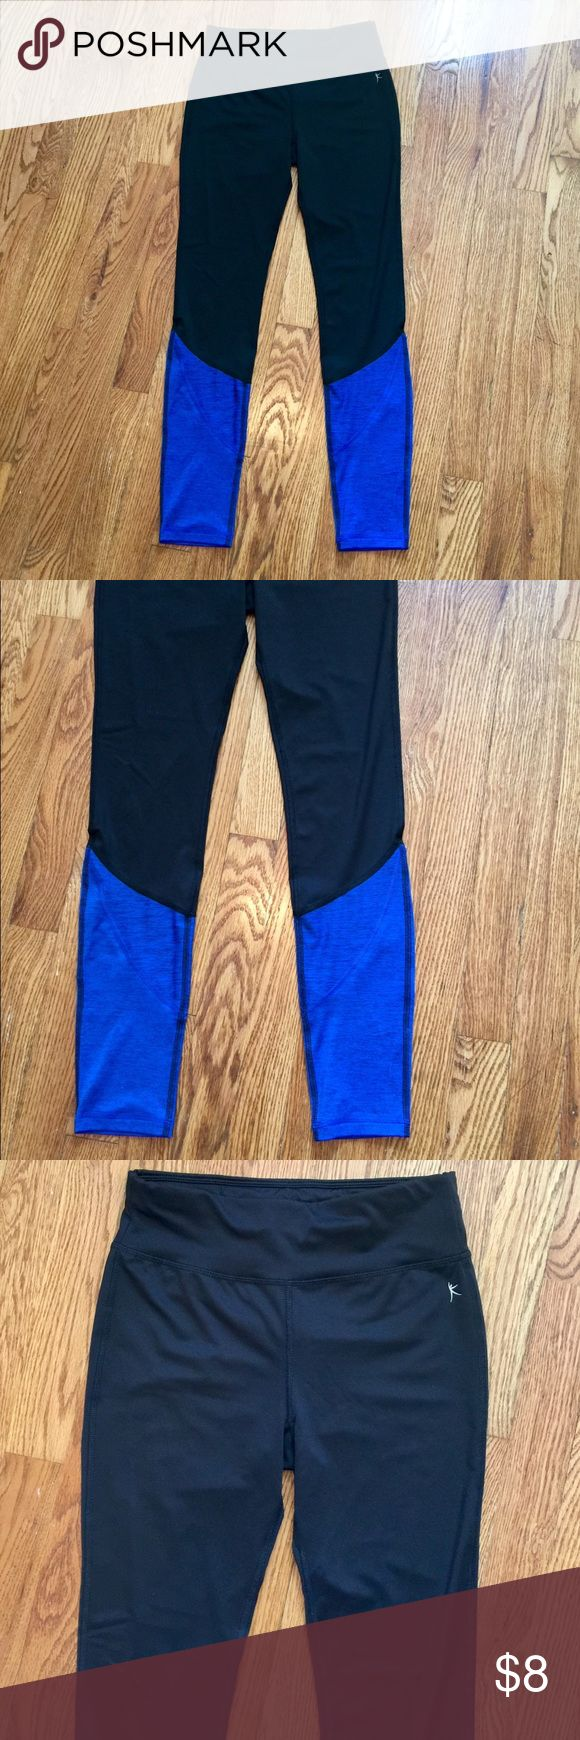 Black and Blue Leggings Super cute black and royal blue leggings from Danskin! Size is XS, but I typically wear a small in leggings (Nike, adidas, etc.) and these fit me. Worn maybe twice, still in perfect condition 😊 Danskin Pants Leggings